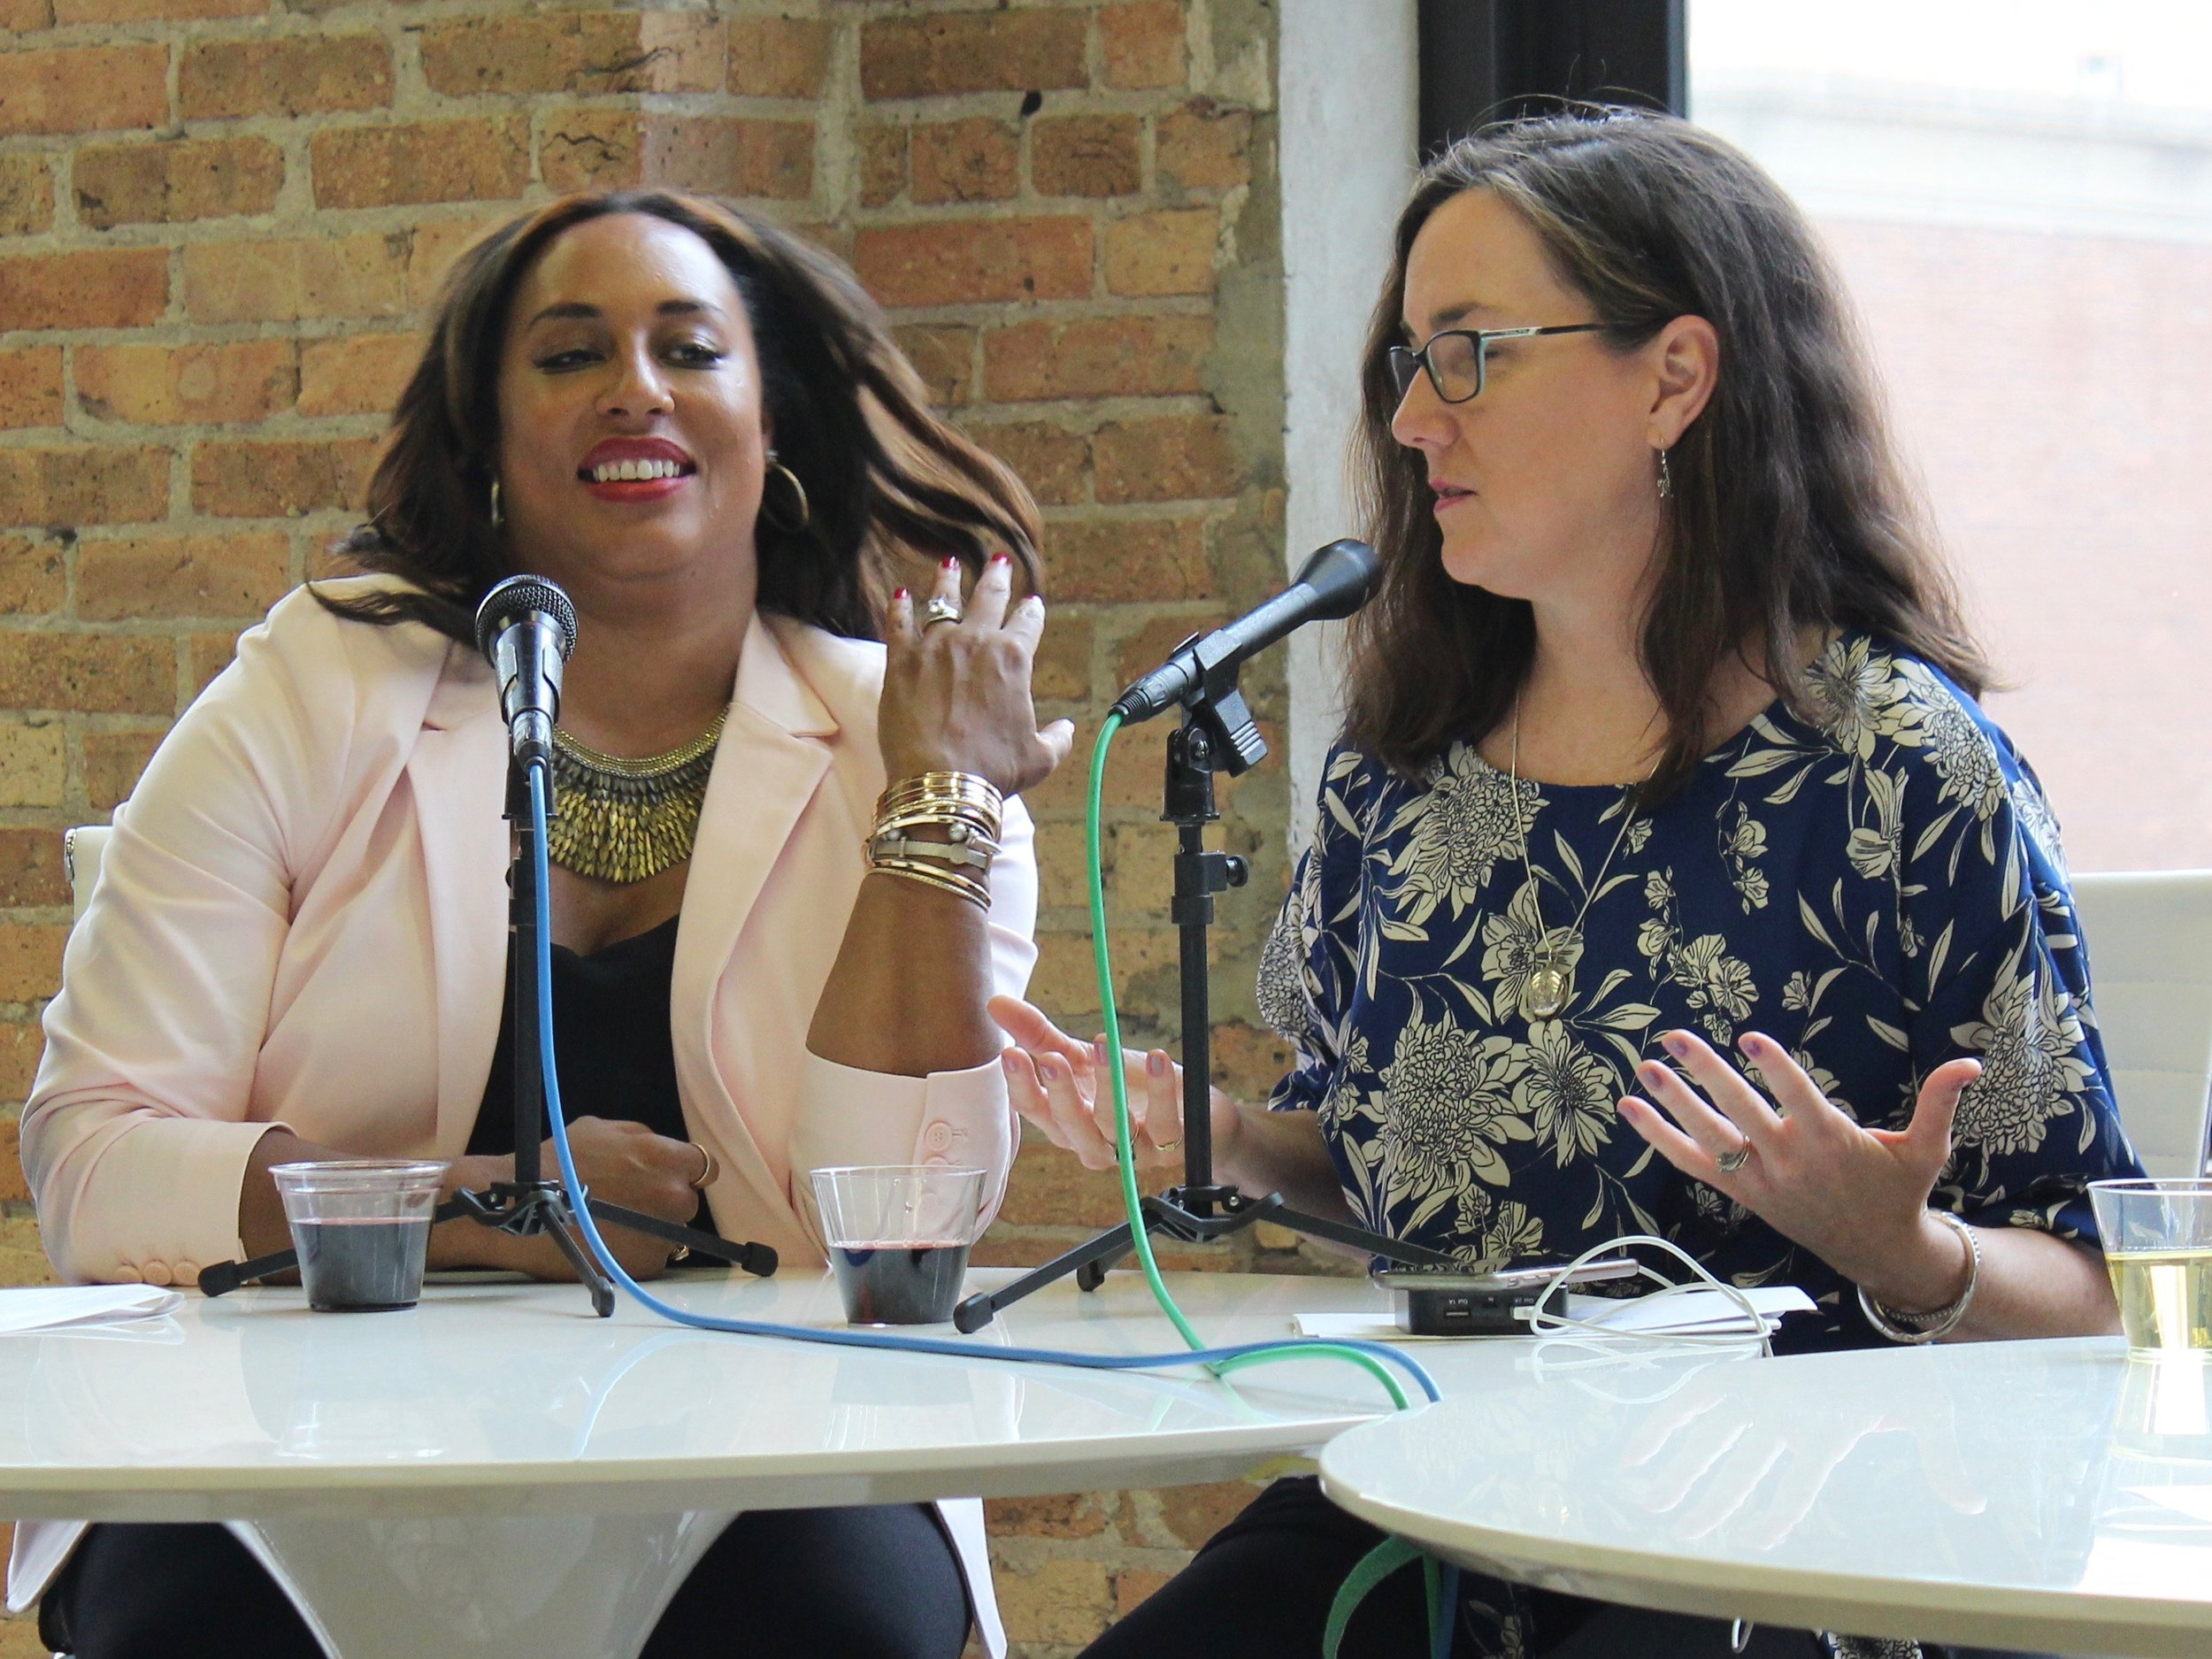 Sen. Toi Hutchinson and Rep. Kelly Cassidy credited their trust and friendship with getting the groundbreaking bill through the General Assembly. (One Illinois/Ted Cox)